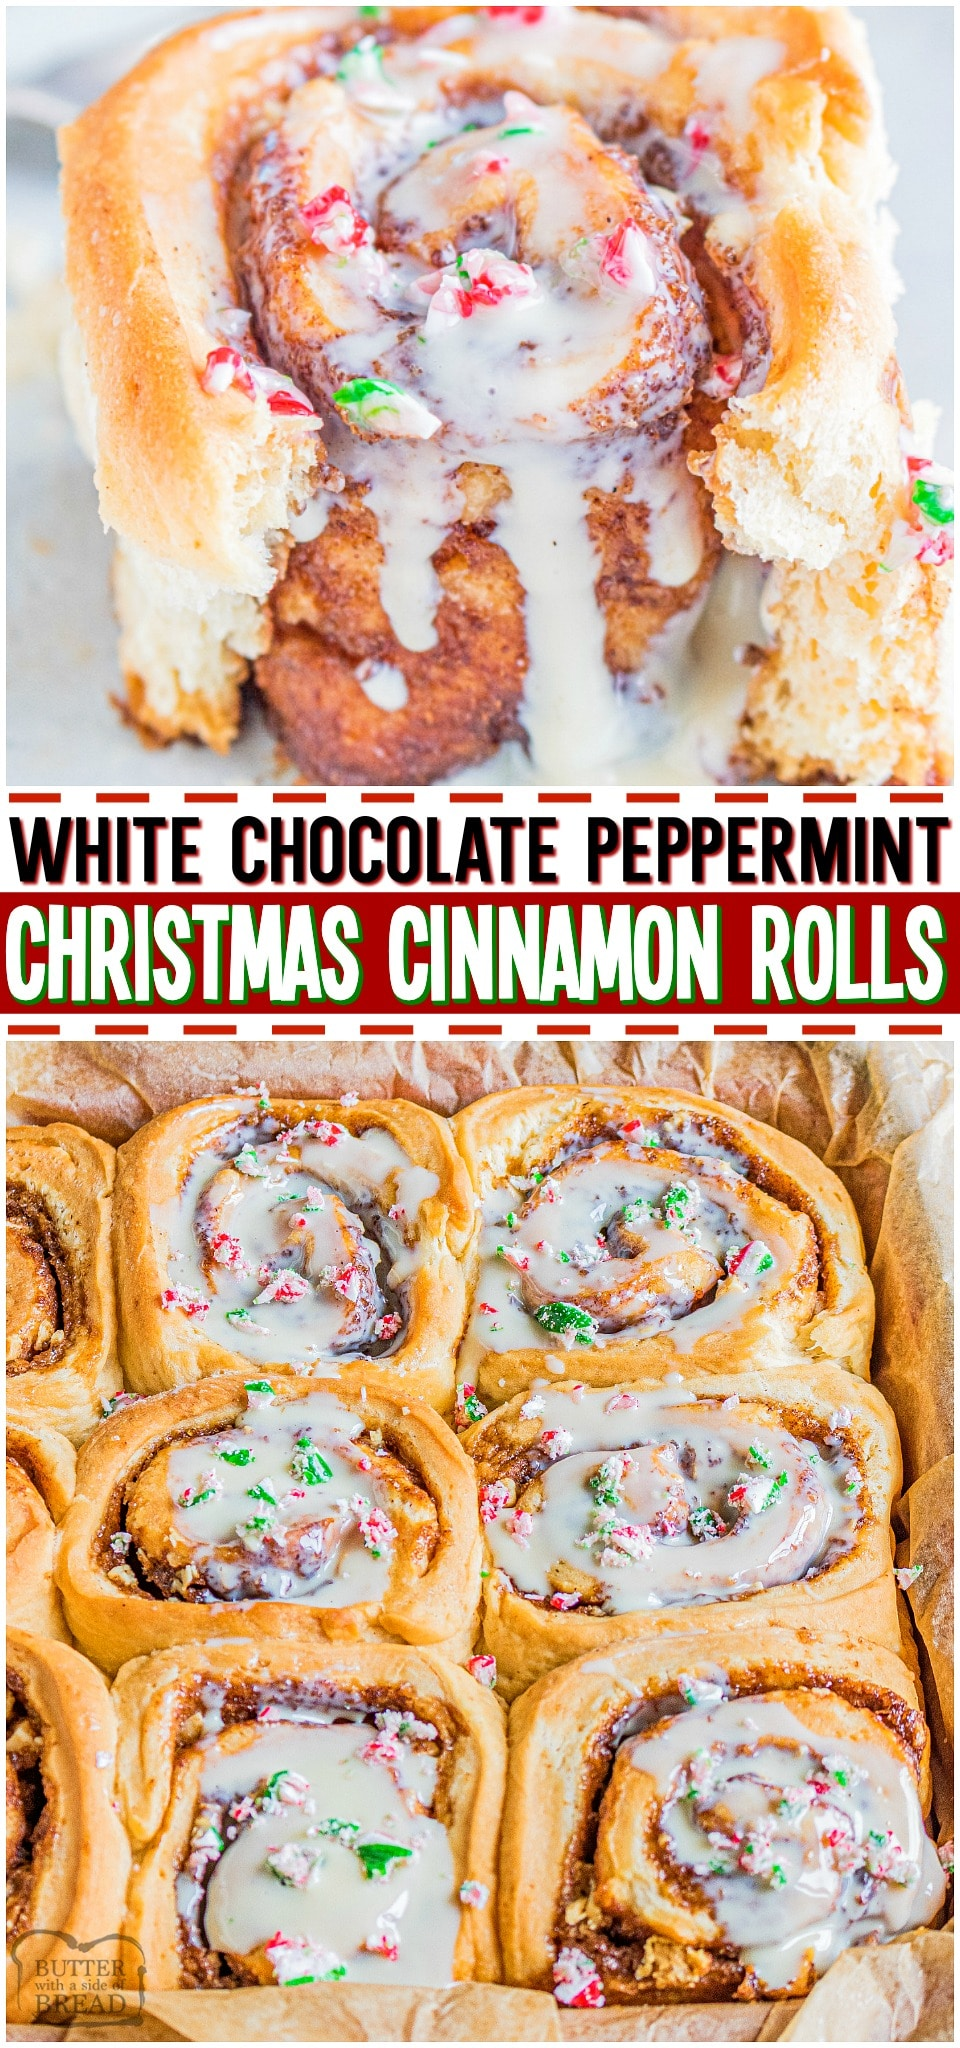 Christmas Cinnamon Rolls made with a cinnamon, white chocolate filling and topped with a simple peppermint vanilla glaze! Celebrate Christmas morning with this festive homemade Cinnamon Roll recipe!